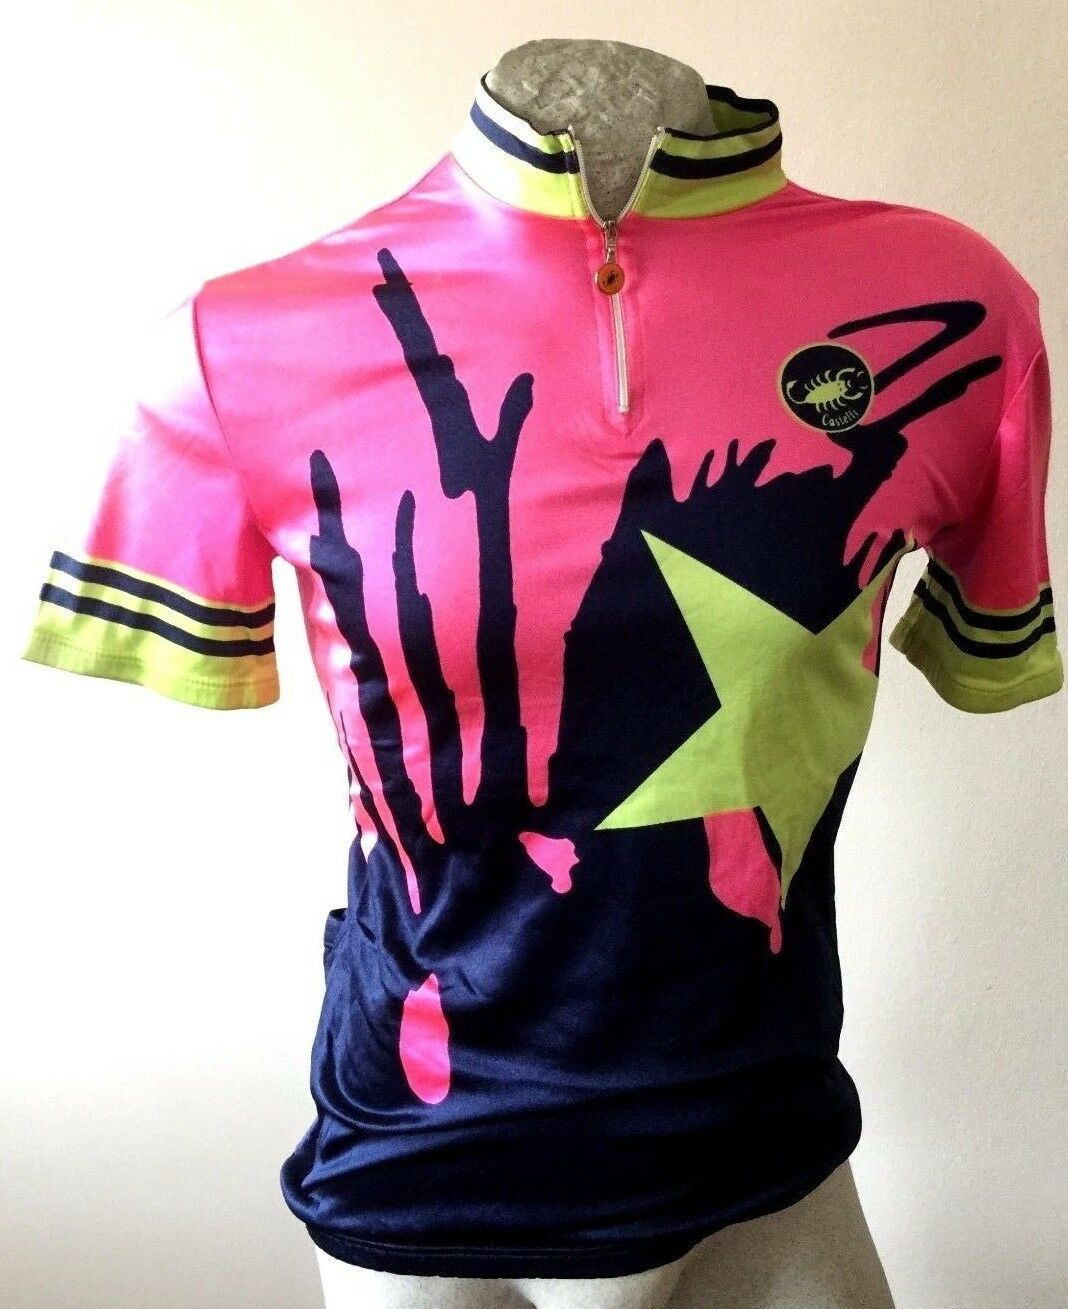 MAGLIA CICLISMO CASTELLI SHIRT CYCLING TRIKOT JERSEY VINTAGE MADE ITALY IN ITALY MADE tg M e7c858